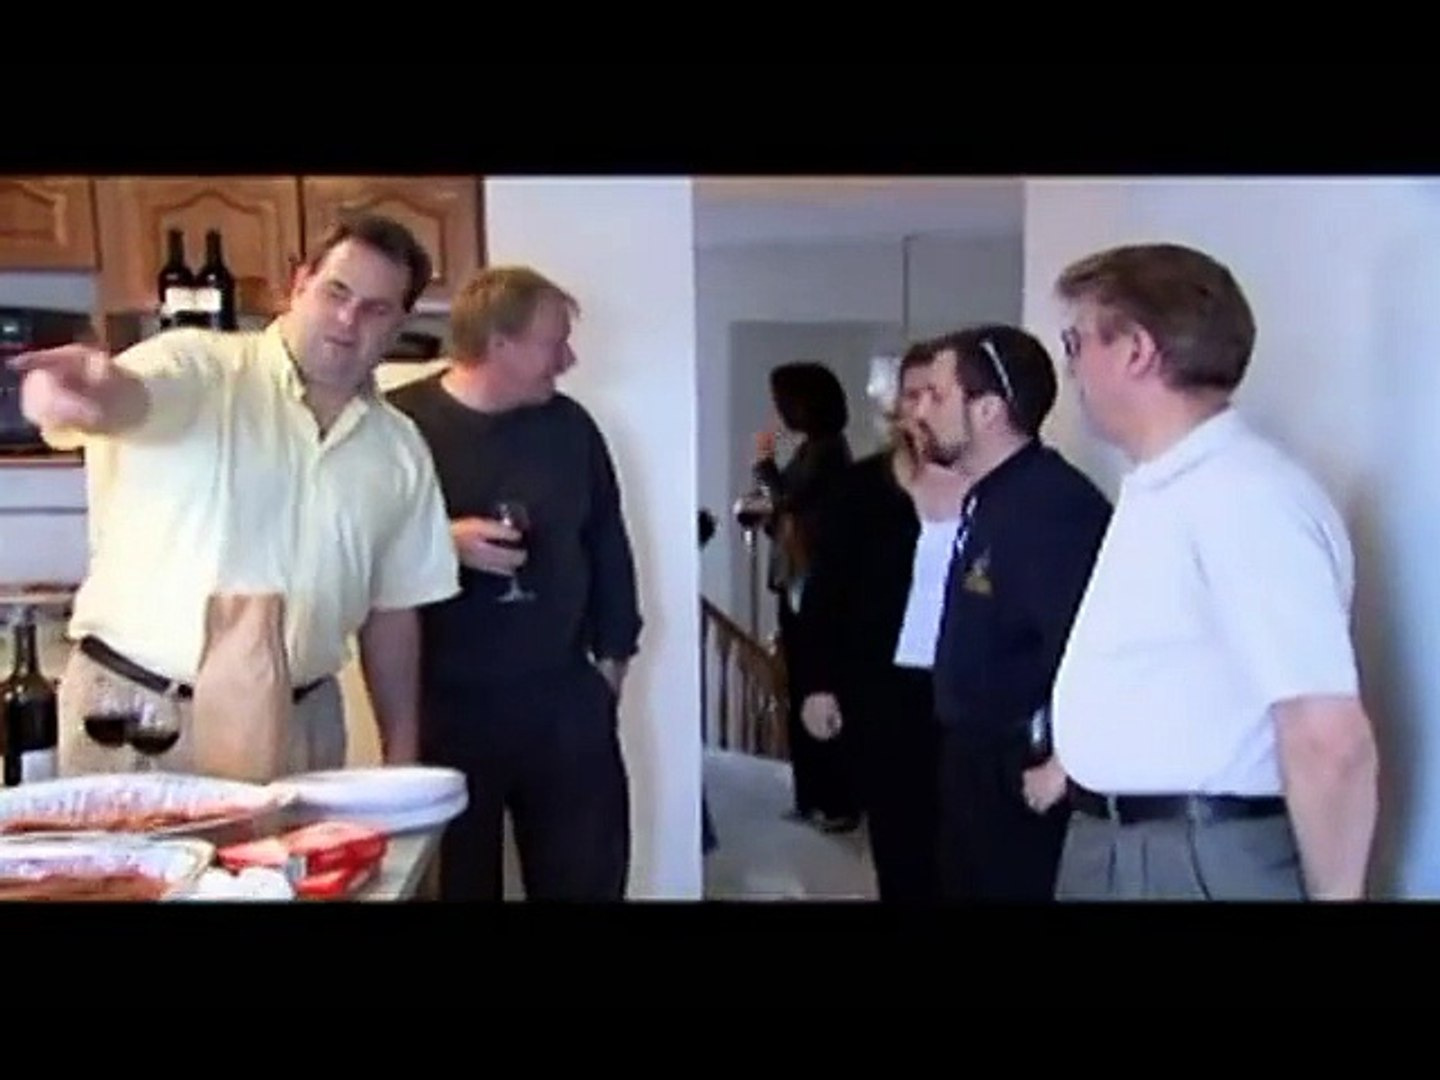 God Only Knows: Same Sex Marriage (2005) - Trailer (Documentary, Religious, Faith-Based, Gay Themed)